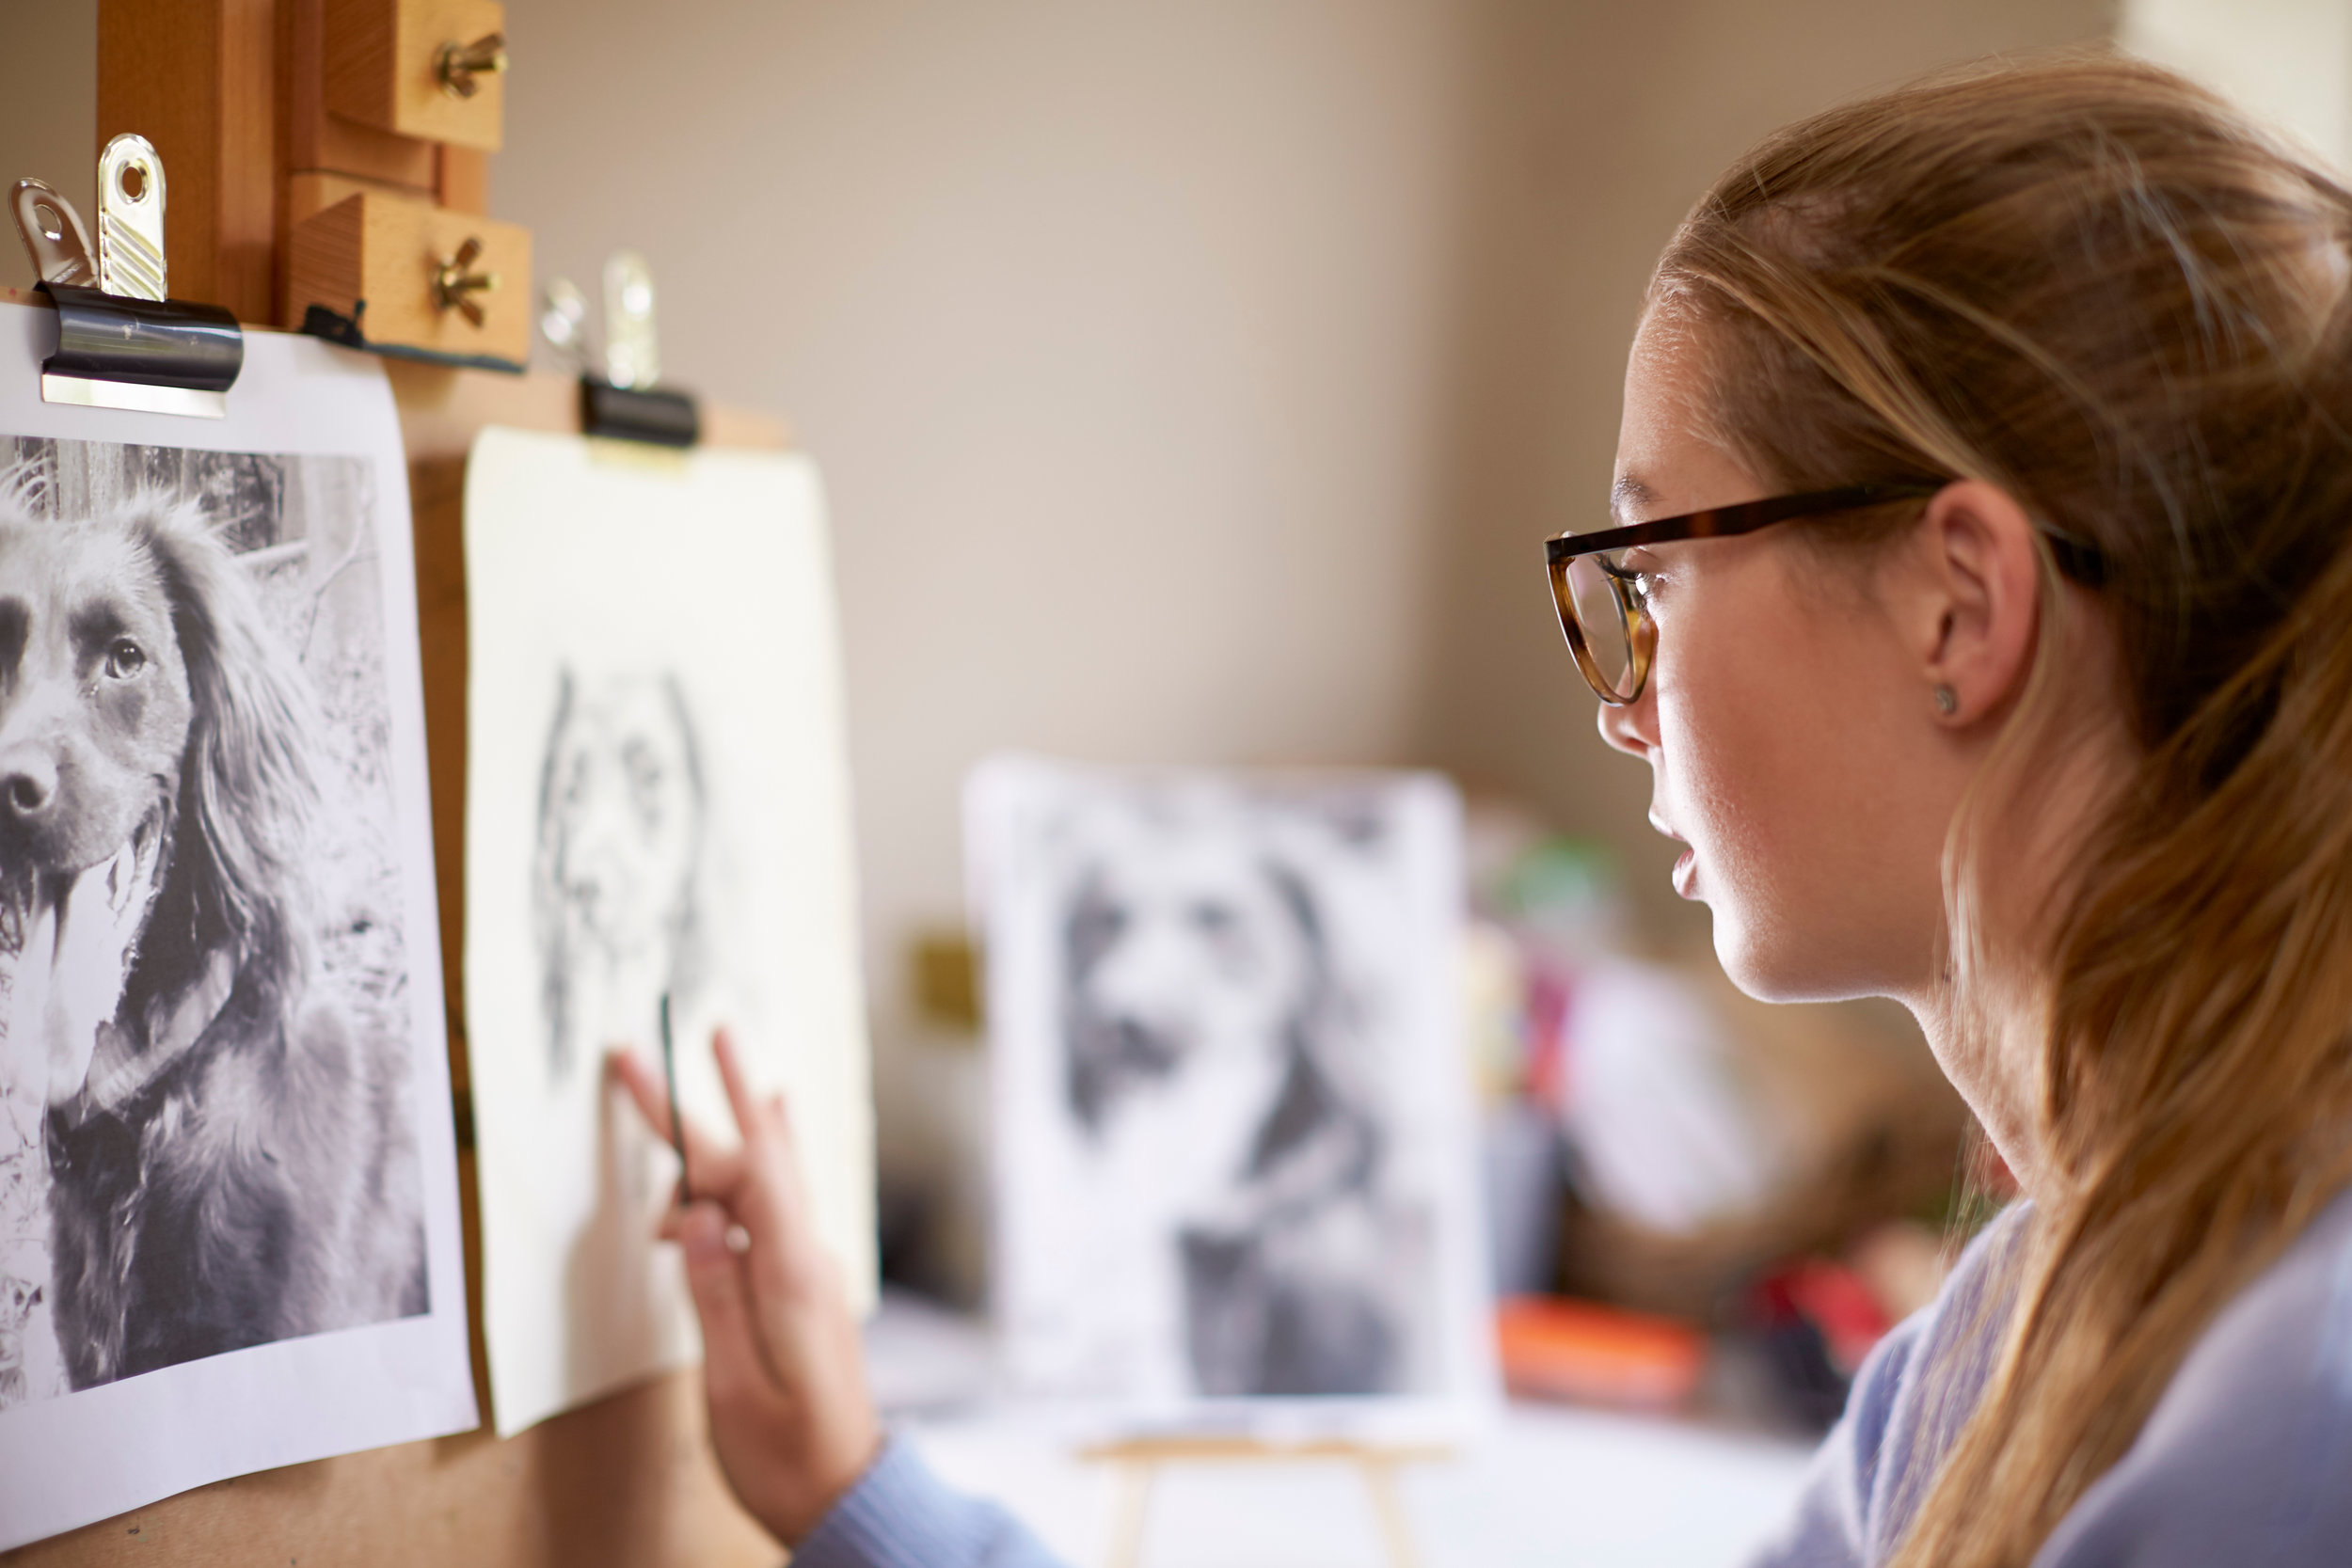 Canva - Side View of Female Teenage Artist Sitting at Easel Drawing Pict.jpg